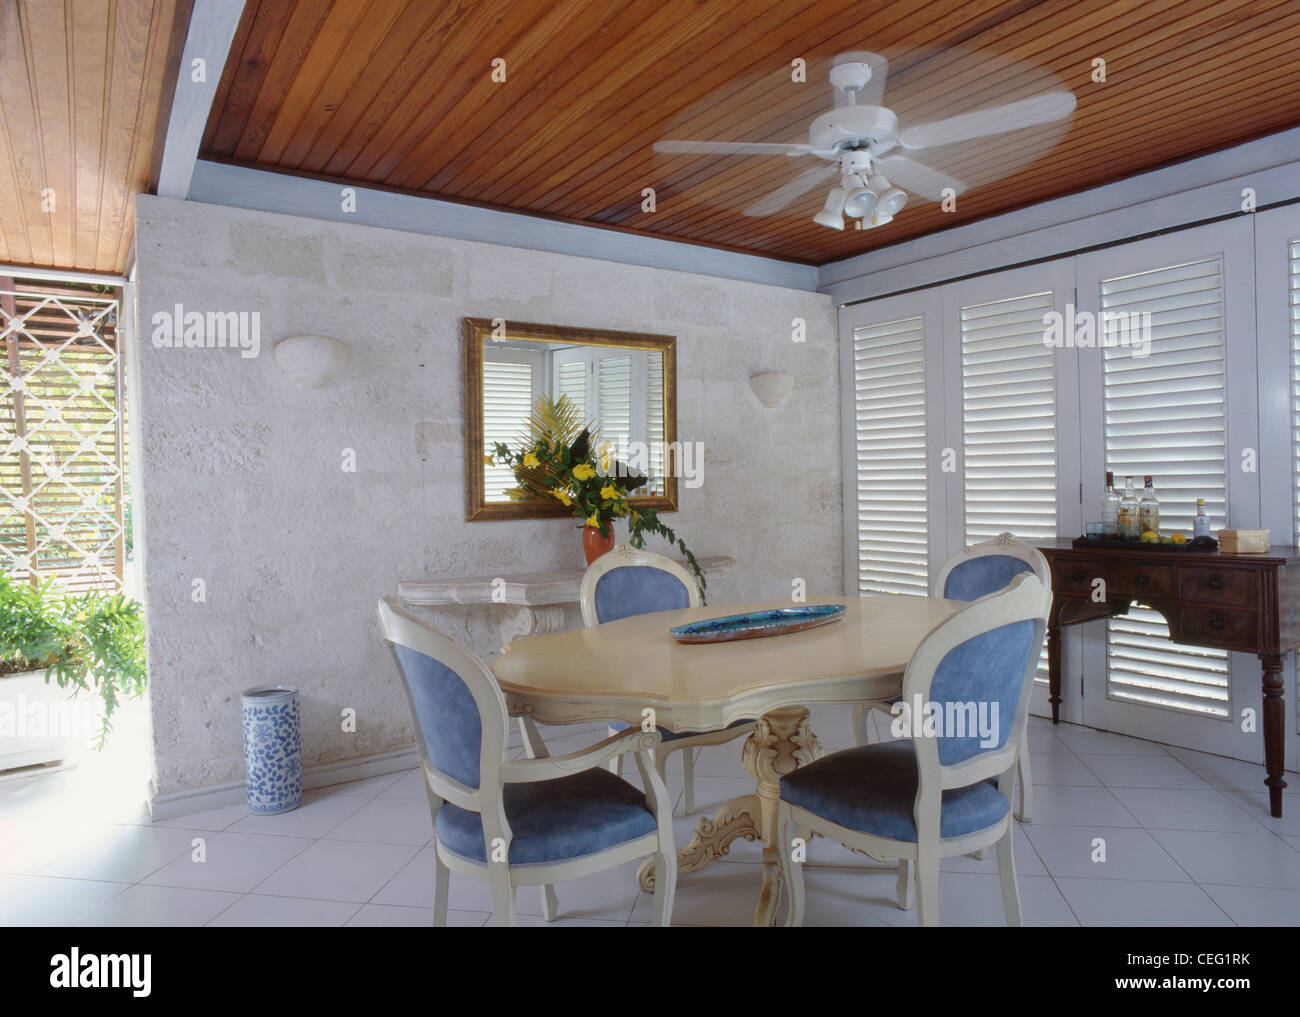 Ceiling Fan Above Cream Table And Traditional Blue Upholstered Chairs In  Modern Caribbean Dining Room With Stone Wall